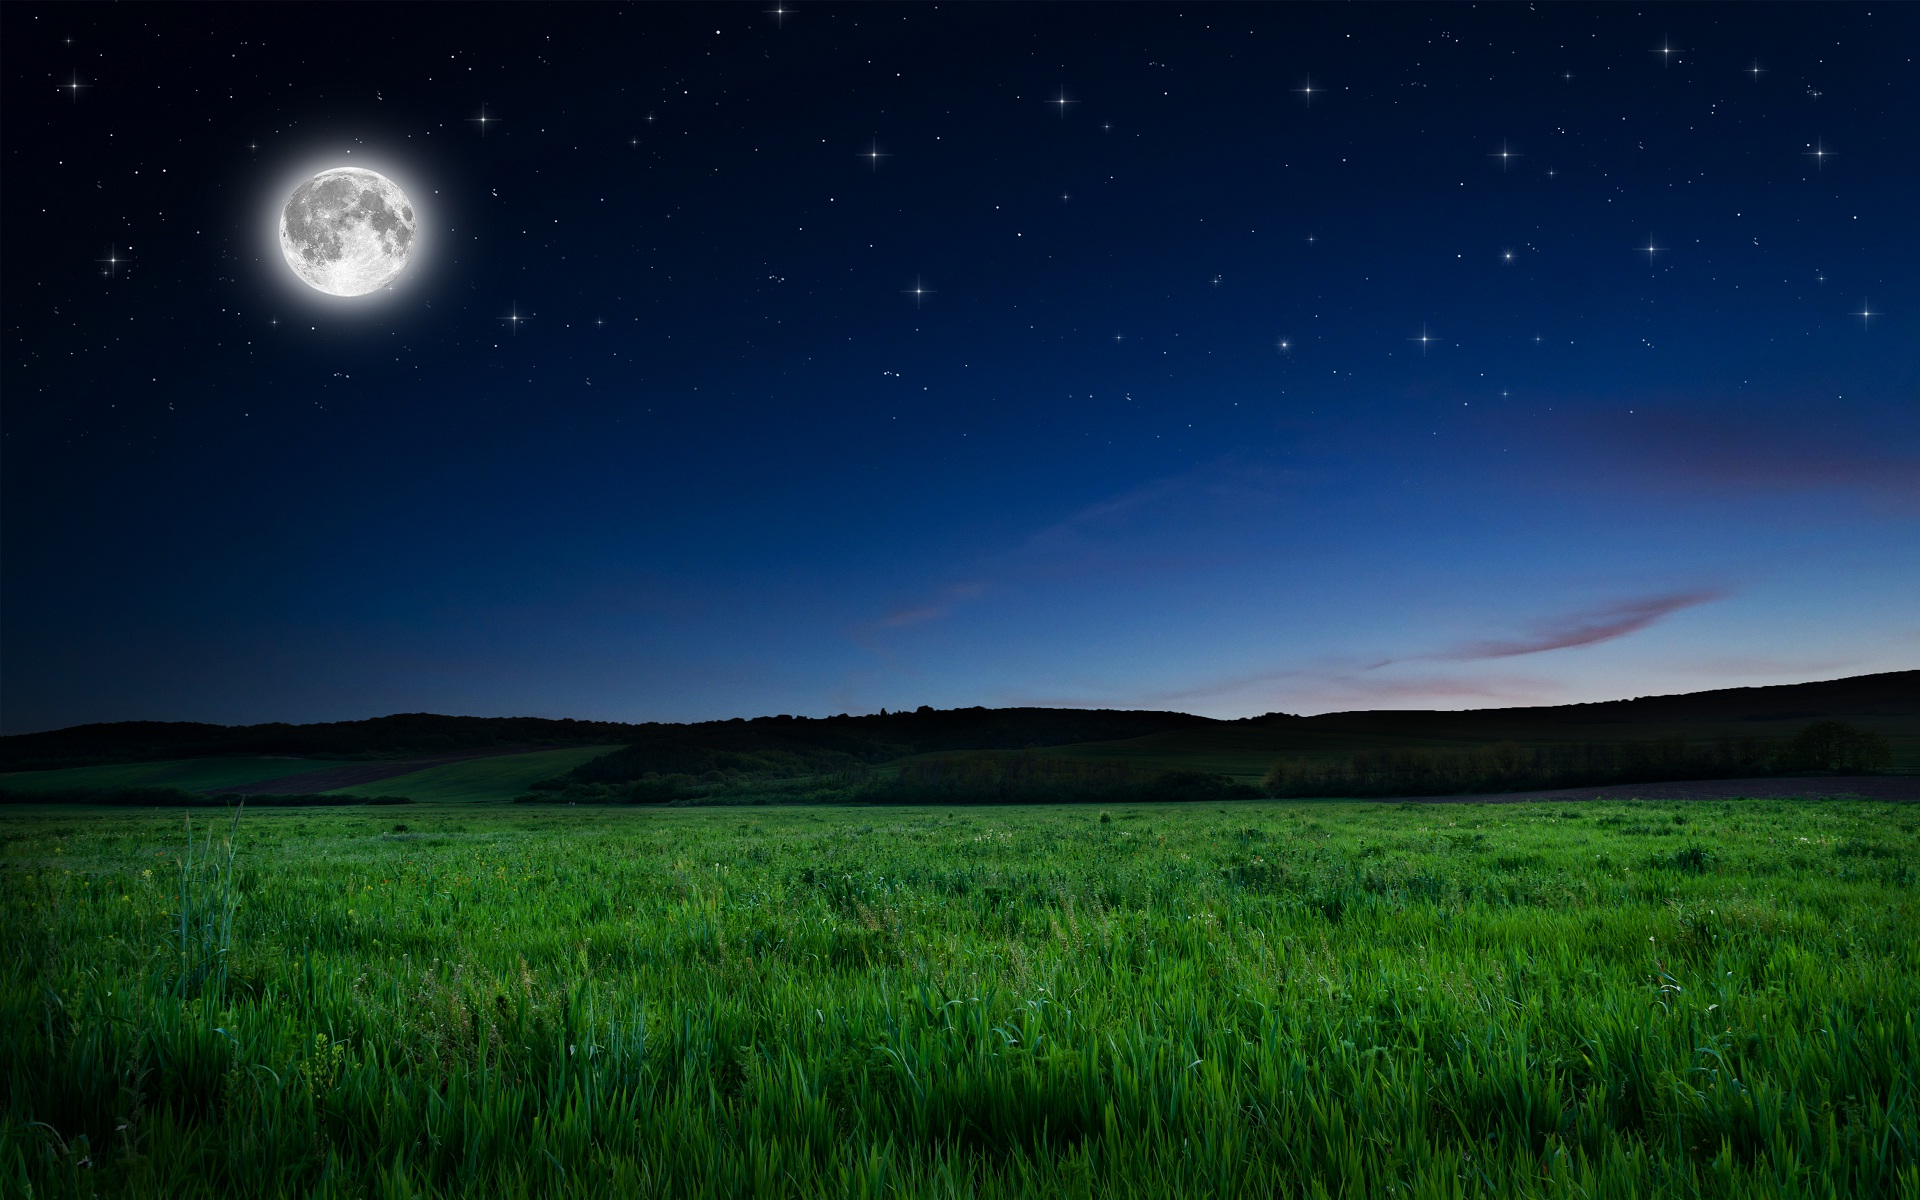 Full Moon Night Wallpaper - Moon Night Hd , HD Wallpaper & Backgrounds